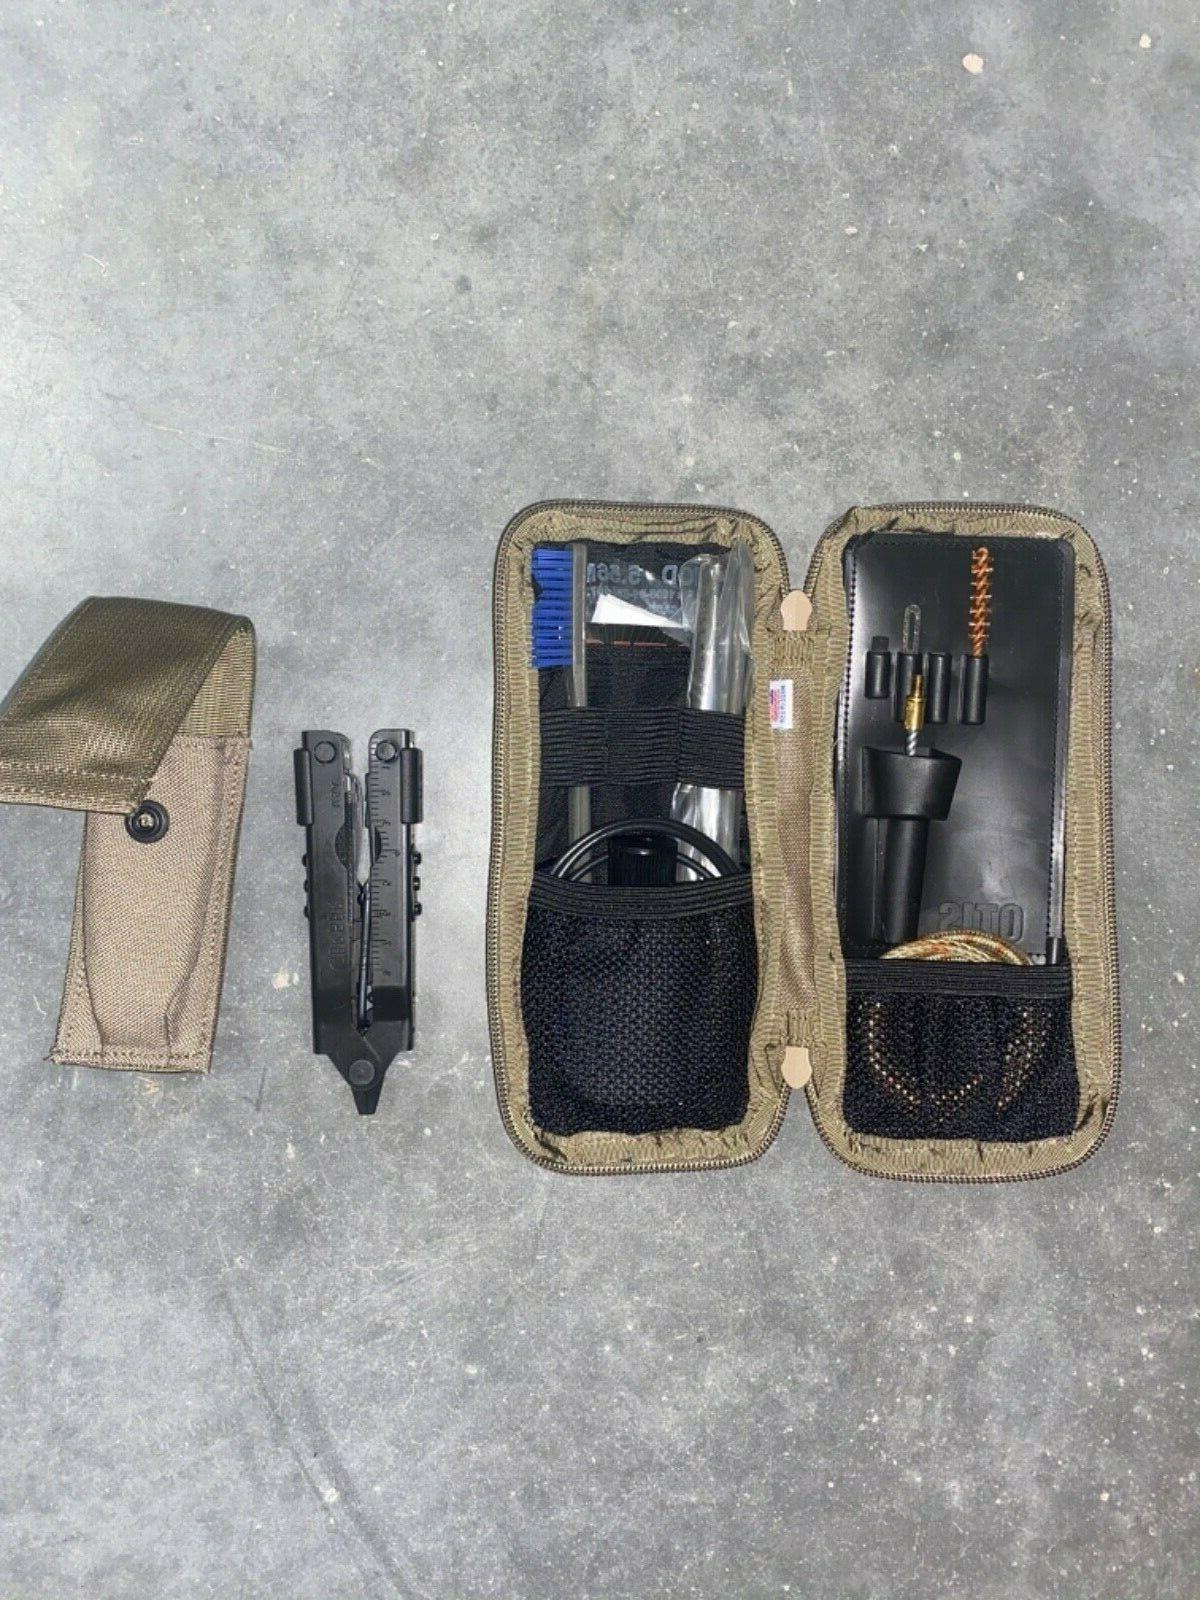 NEW Cleaning Coyote Pouch   OTIS I MOD 5.56mm +multi-tool